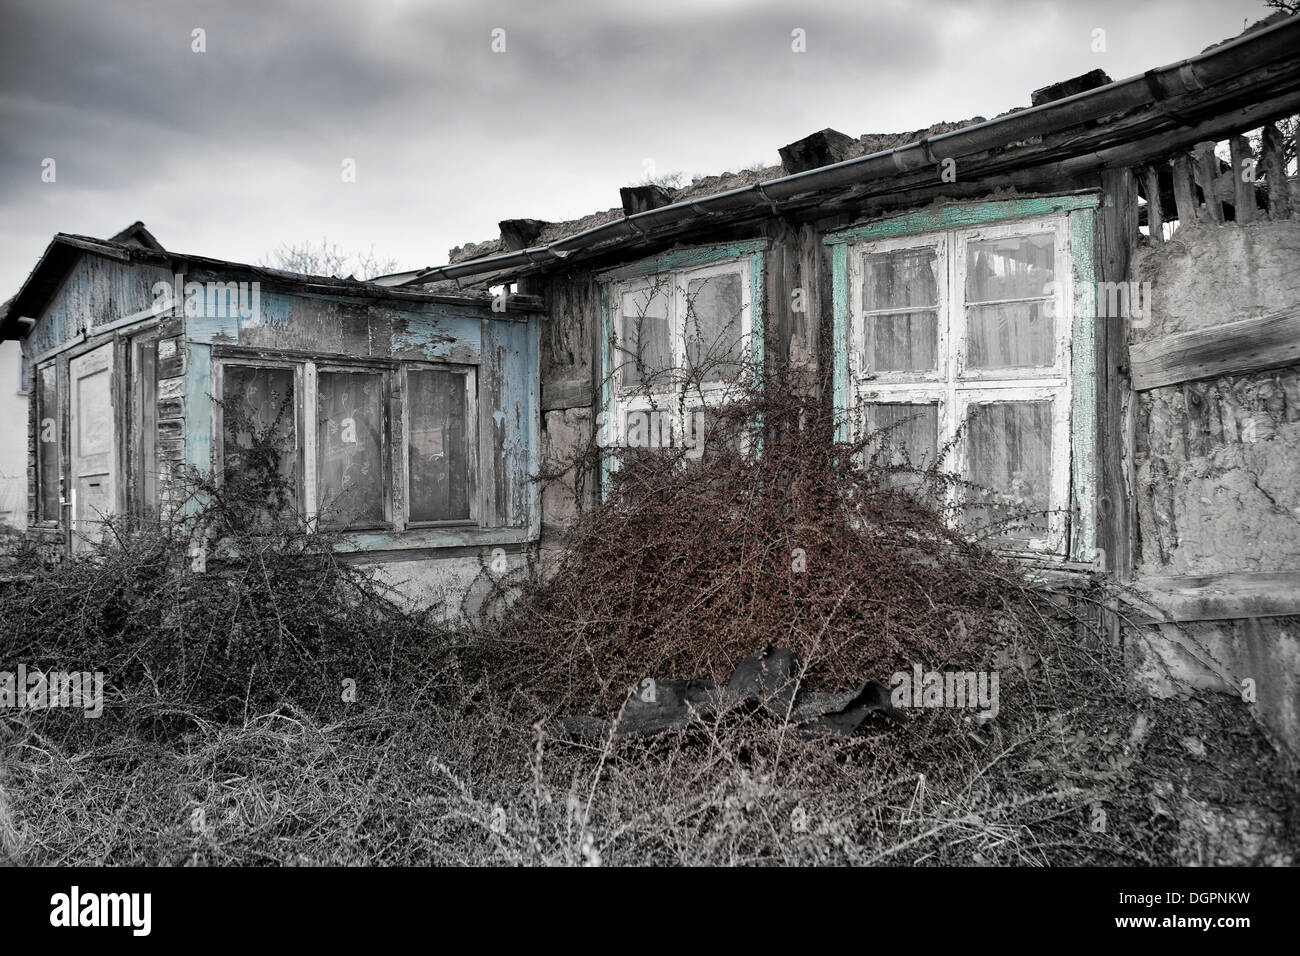 An old unoccupied farmhouse in Gruenefeld, Havelland region, Brandenburg - Stock Image